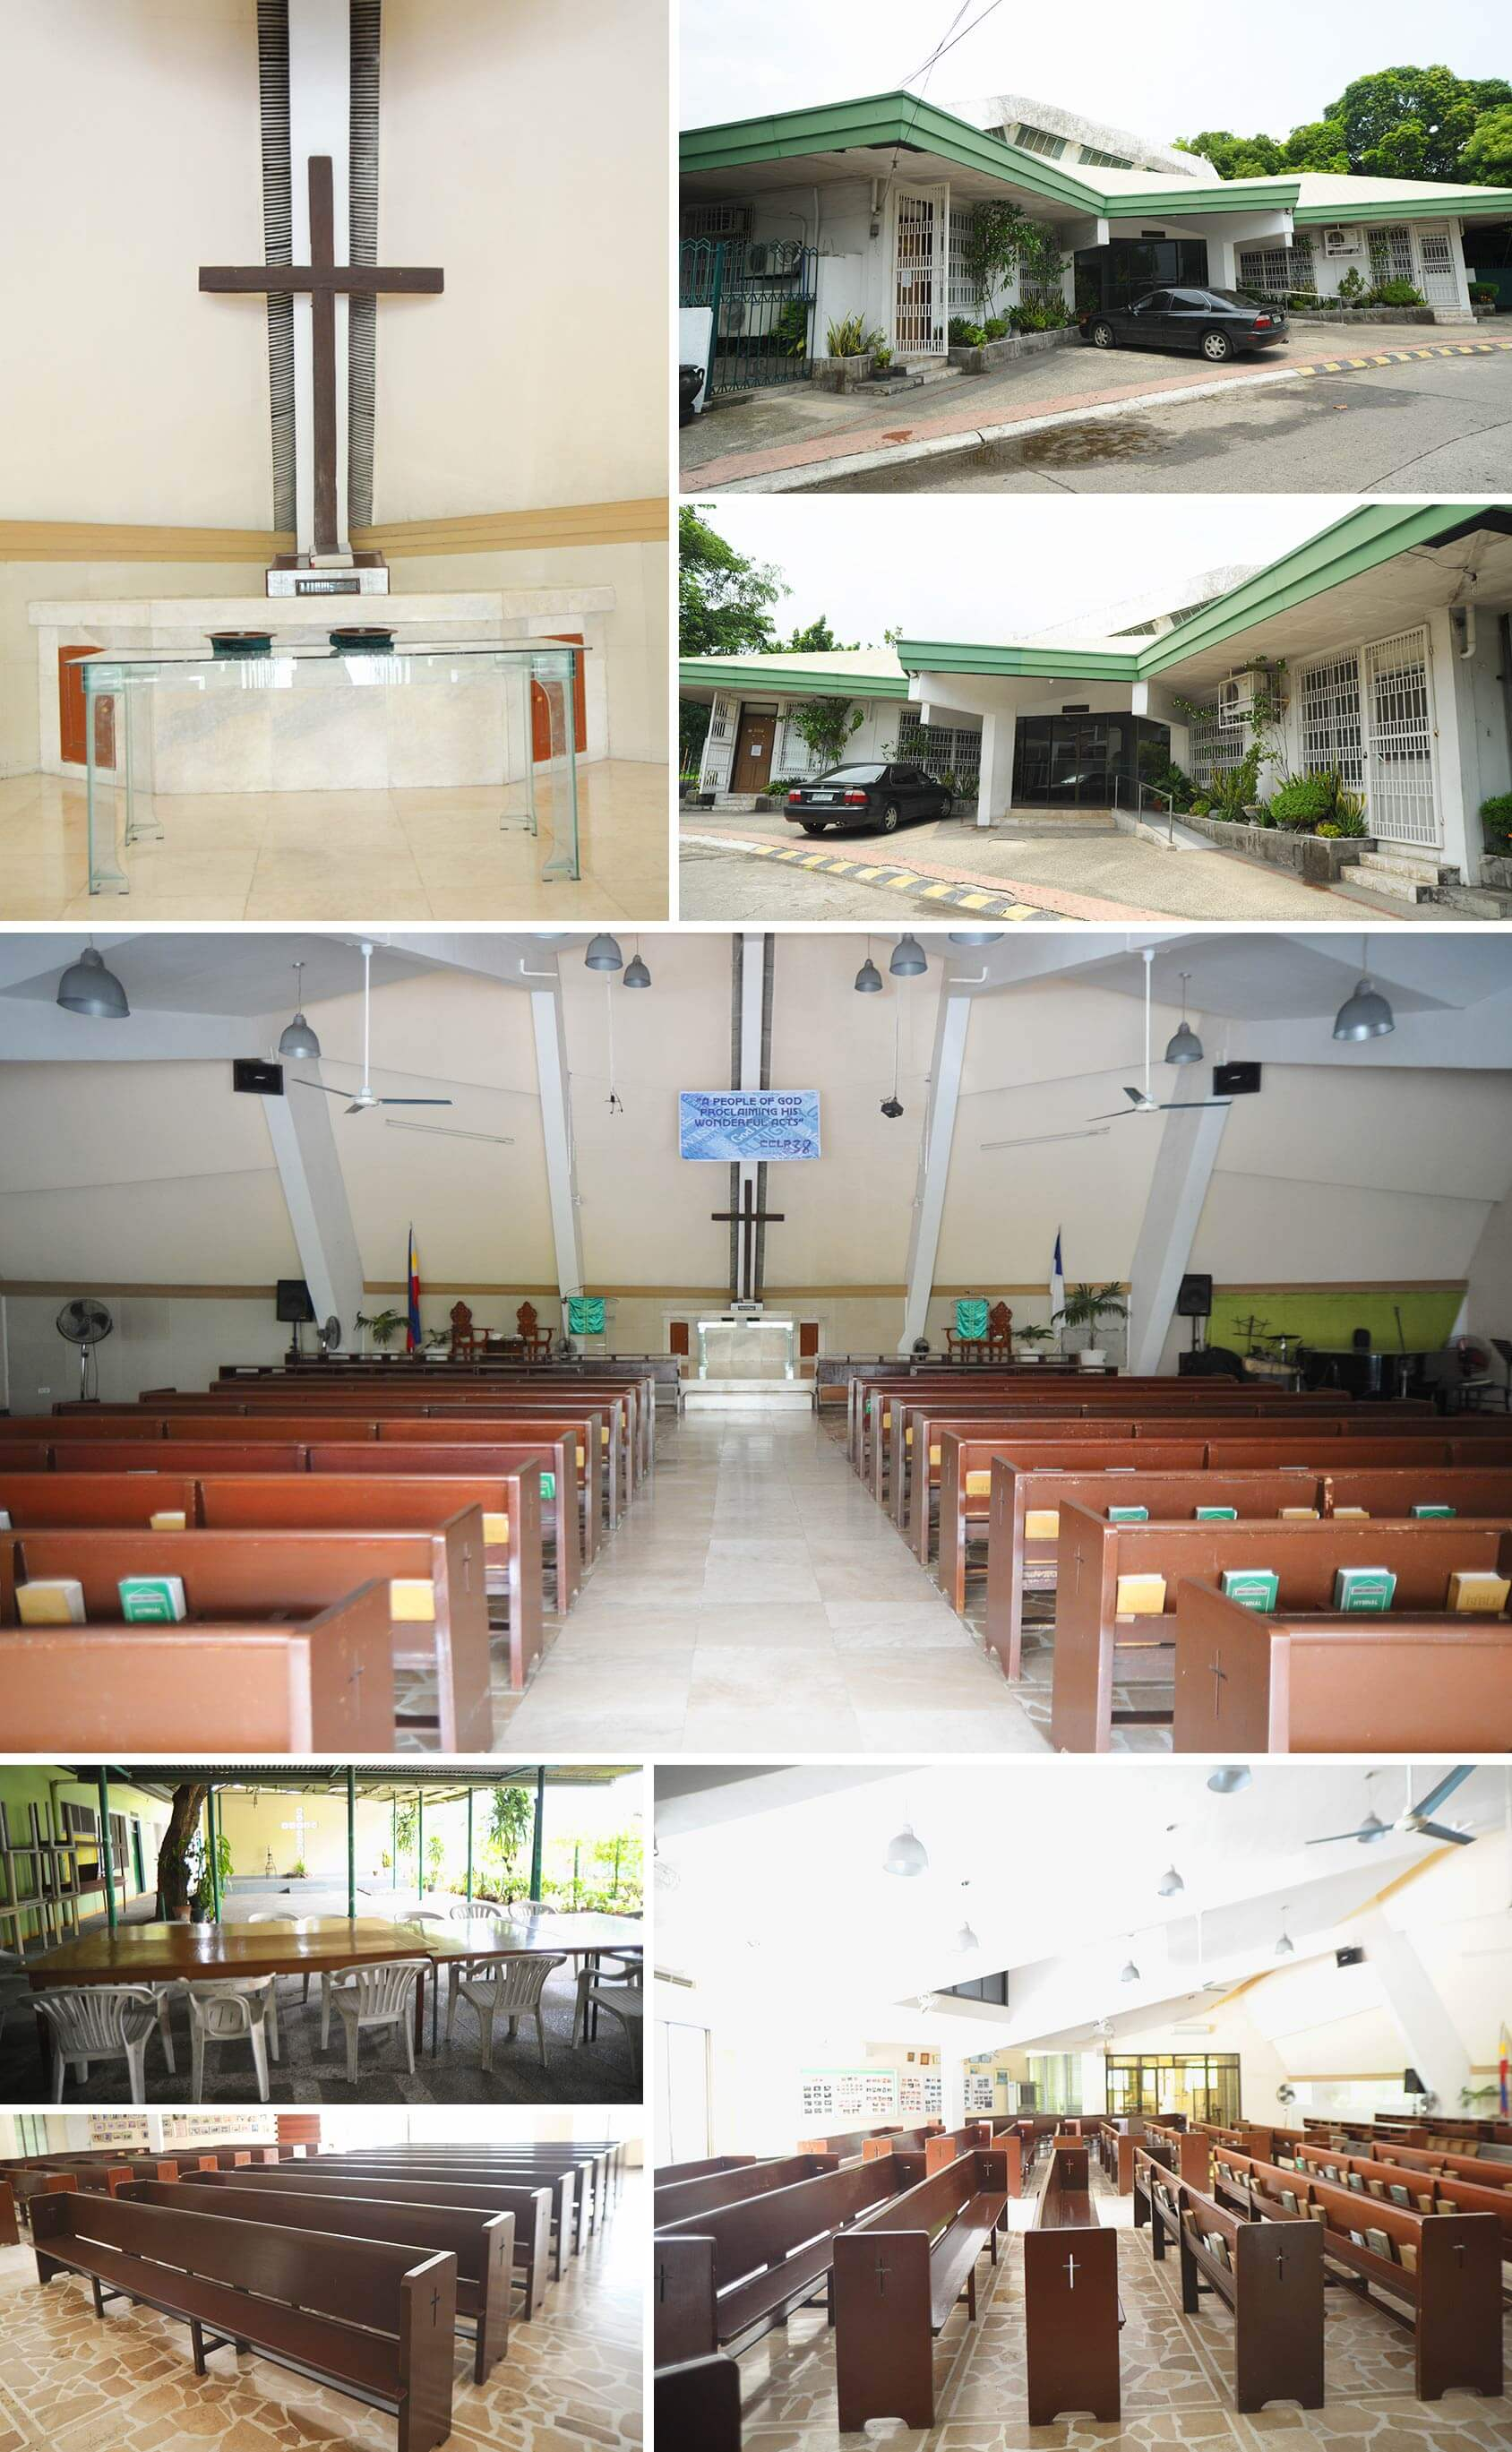 Community Church of Las Pinas